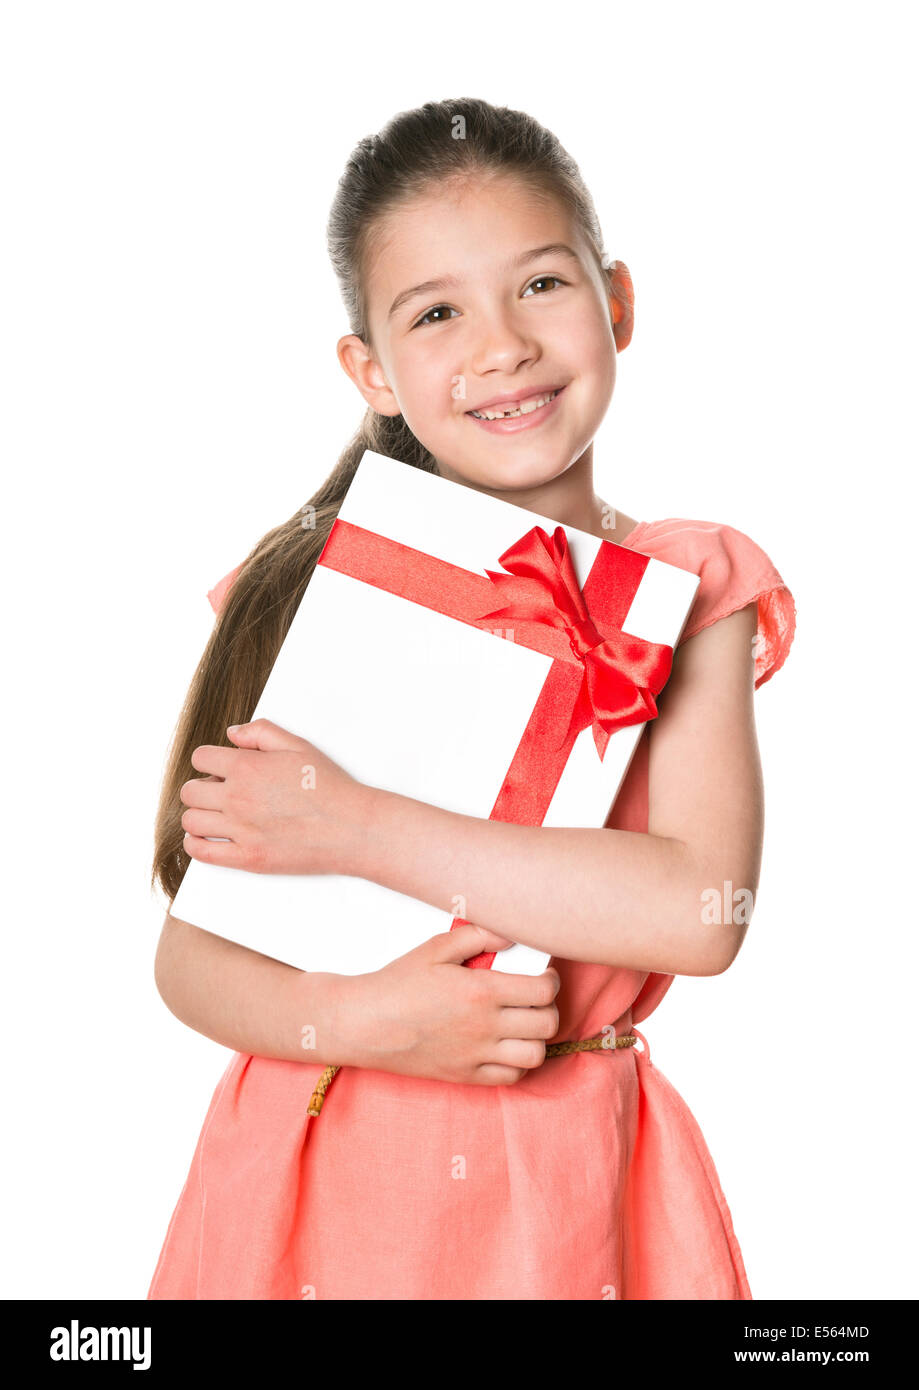 Smiling cute girl 8-9 years holding in hands birthday present in festive package. Isolated on a white background. - Stock Image